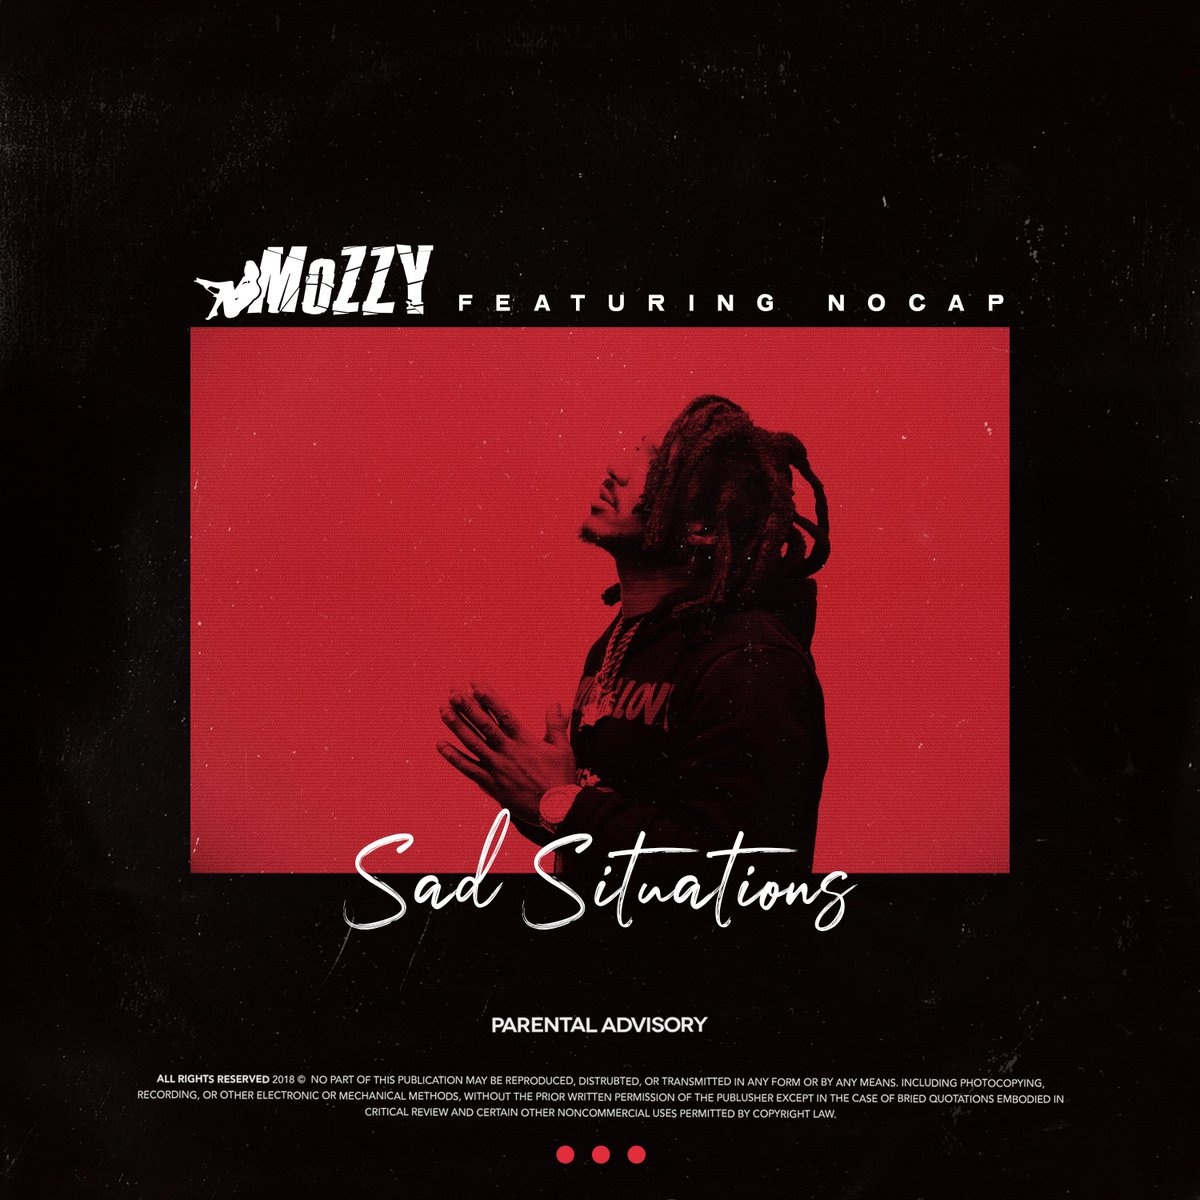 .@MozzyThaMotive and @NoCap pour it all out on new 'Sad Situations' single. Empire.lnk.to/sadsituationsTP